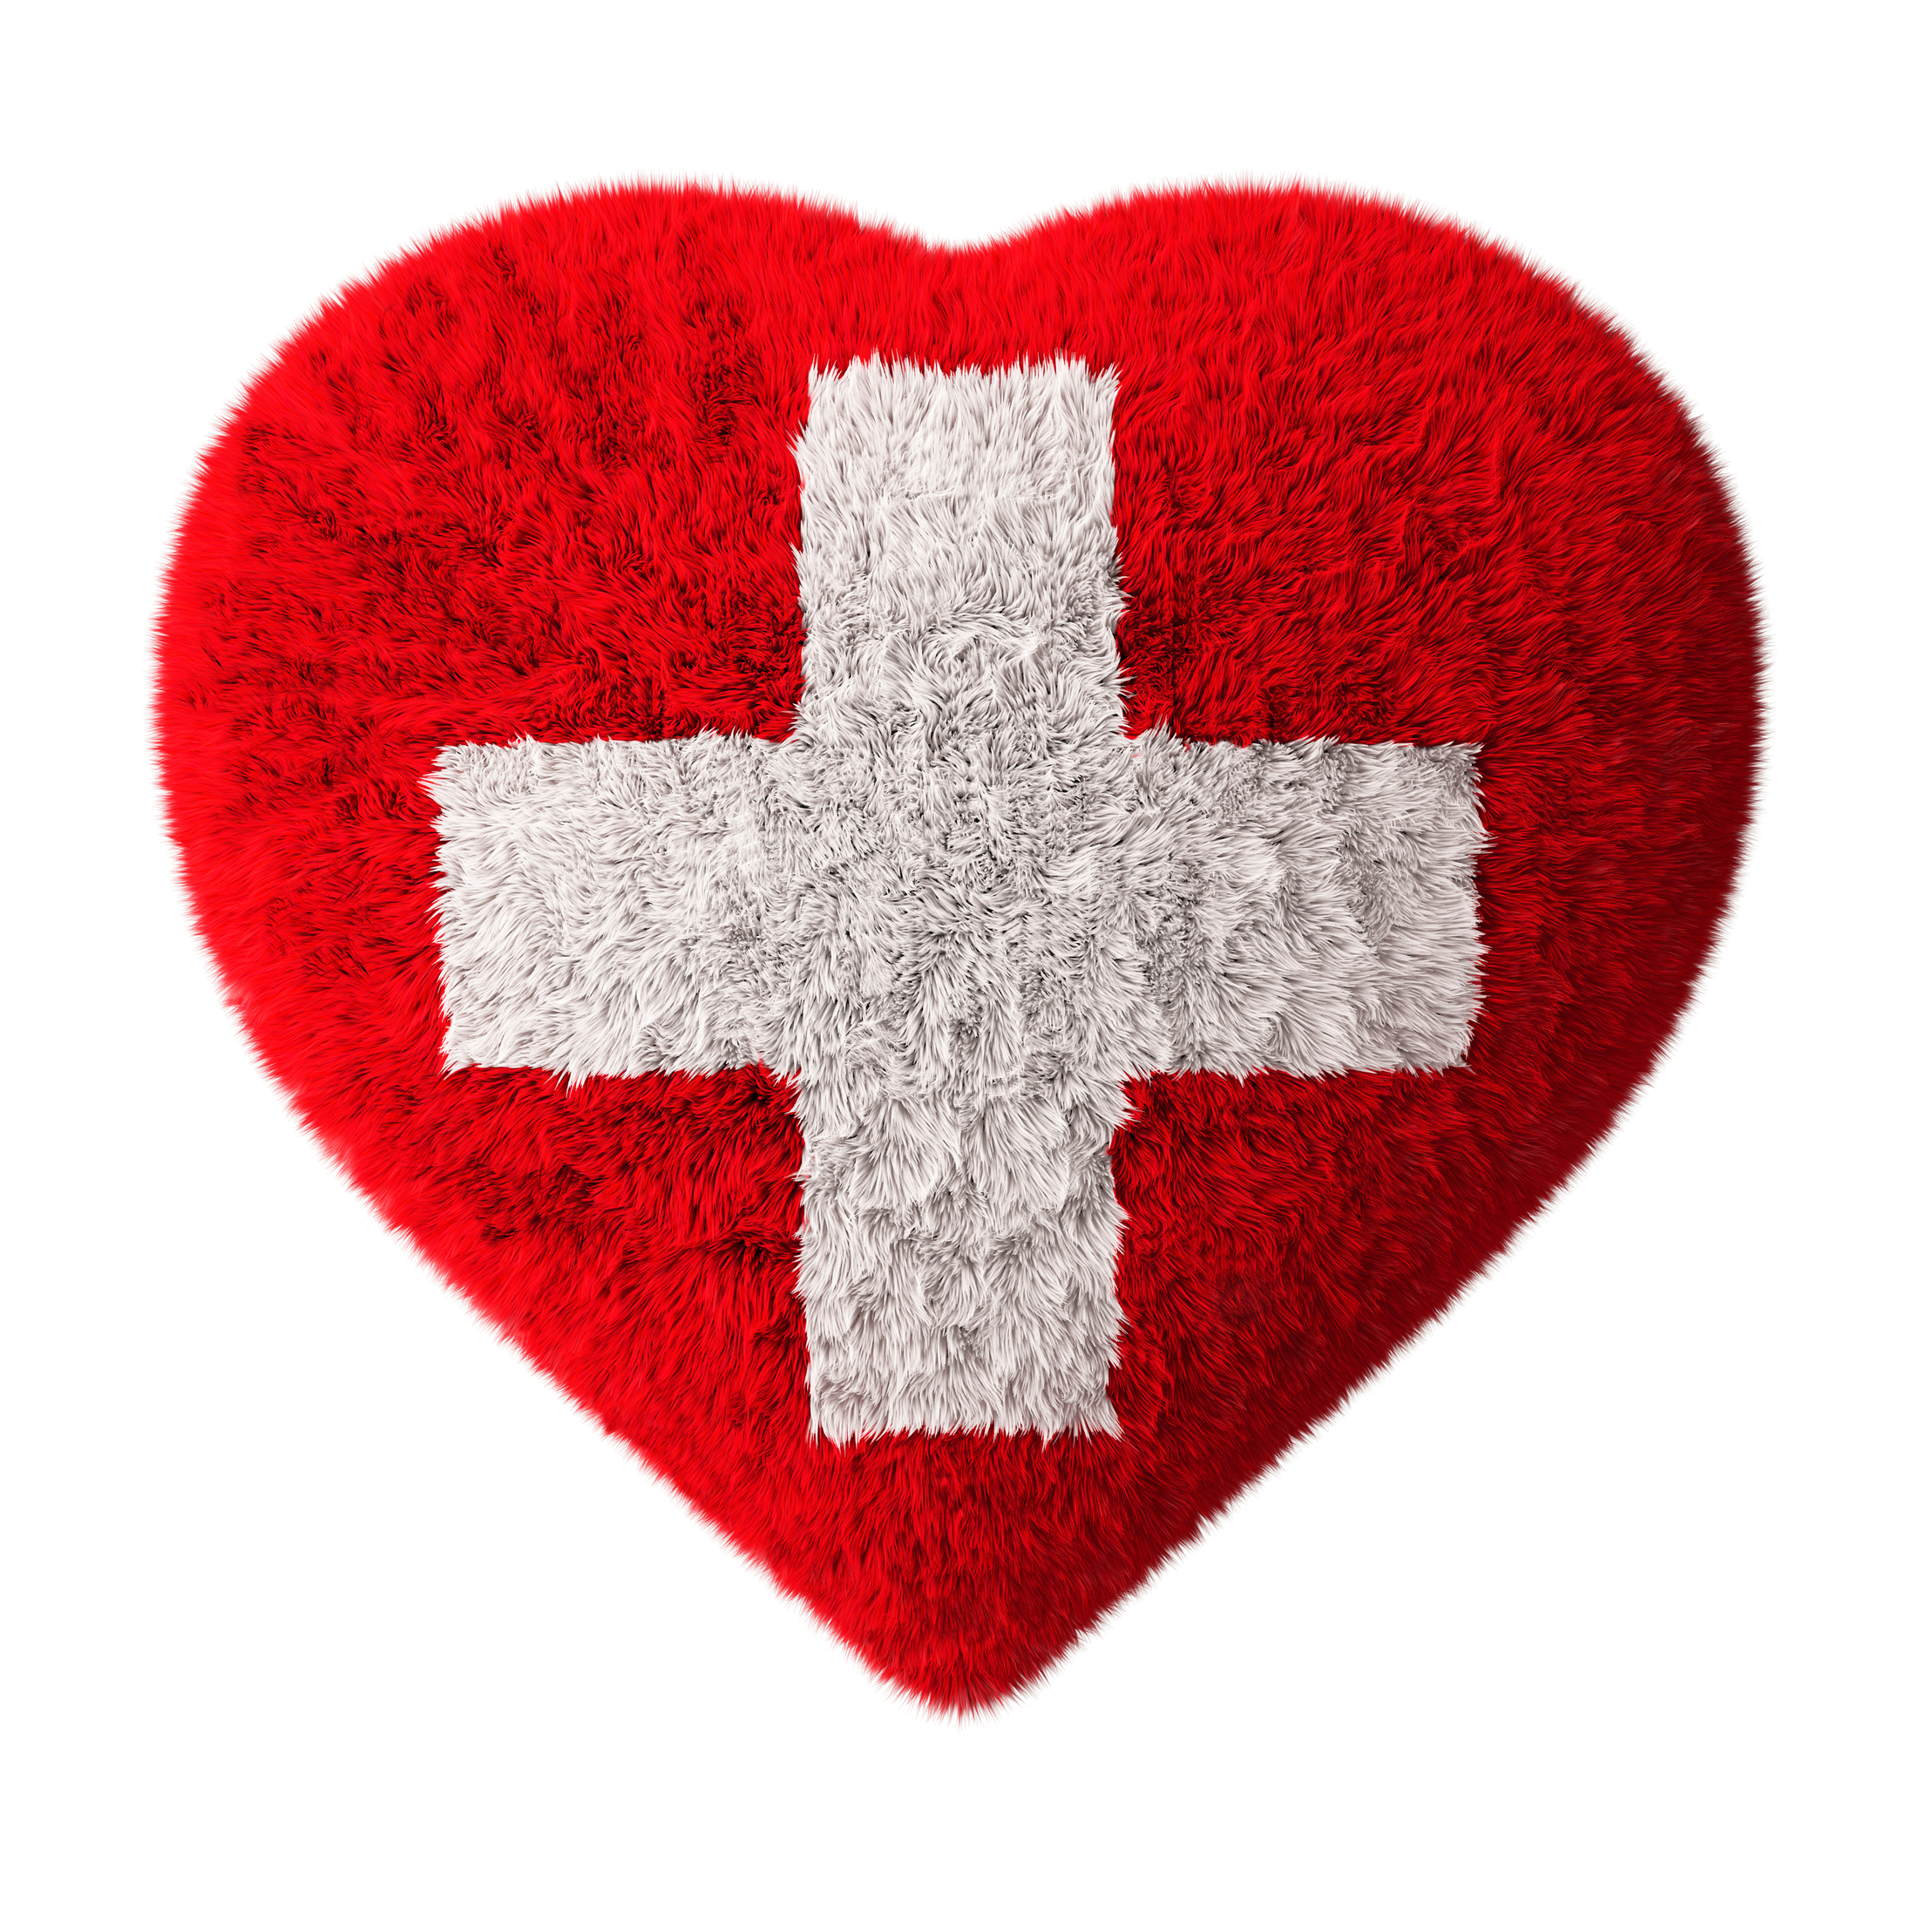 Flag of Switzerland - Fluffy Heart - First aid. Isolated on white.